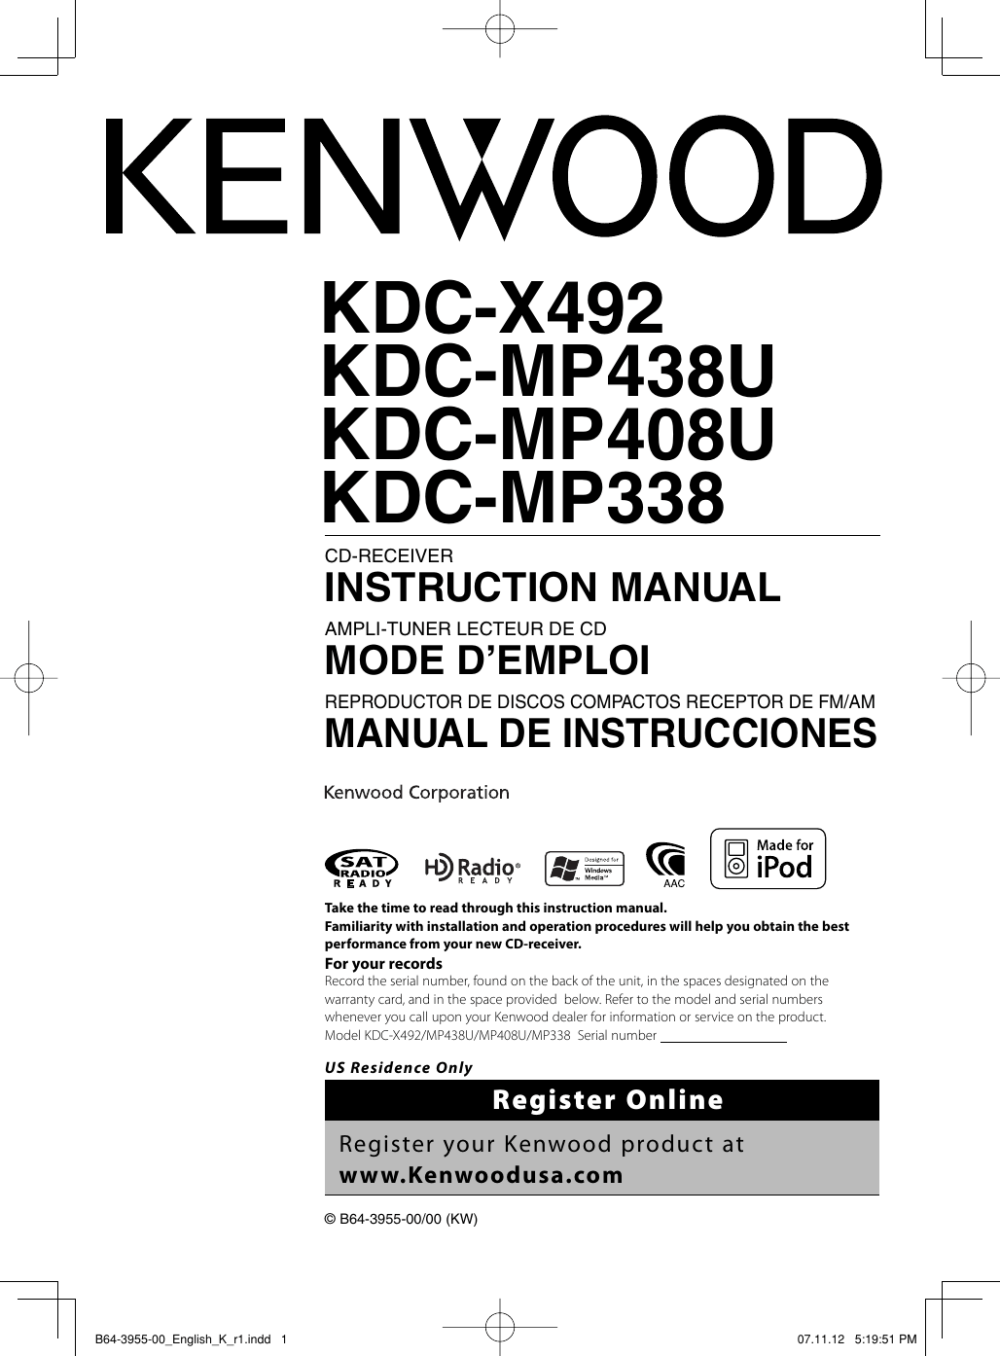 Wiring Diagram For Kenwood Kdc X492 - schematic auger wiring ... on